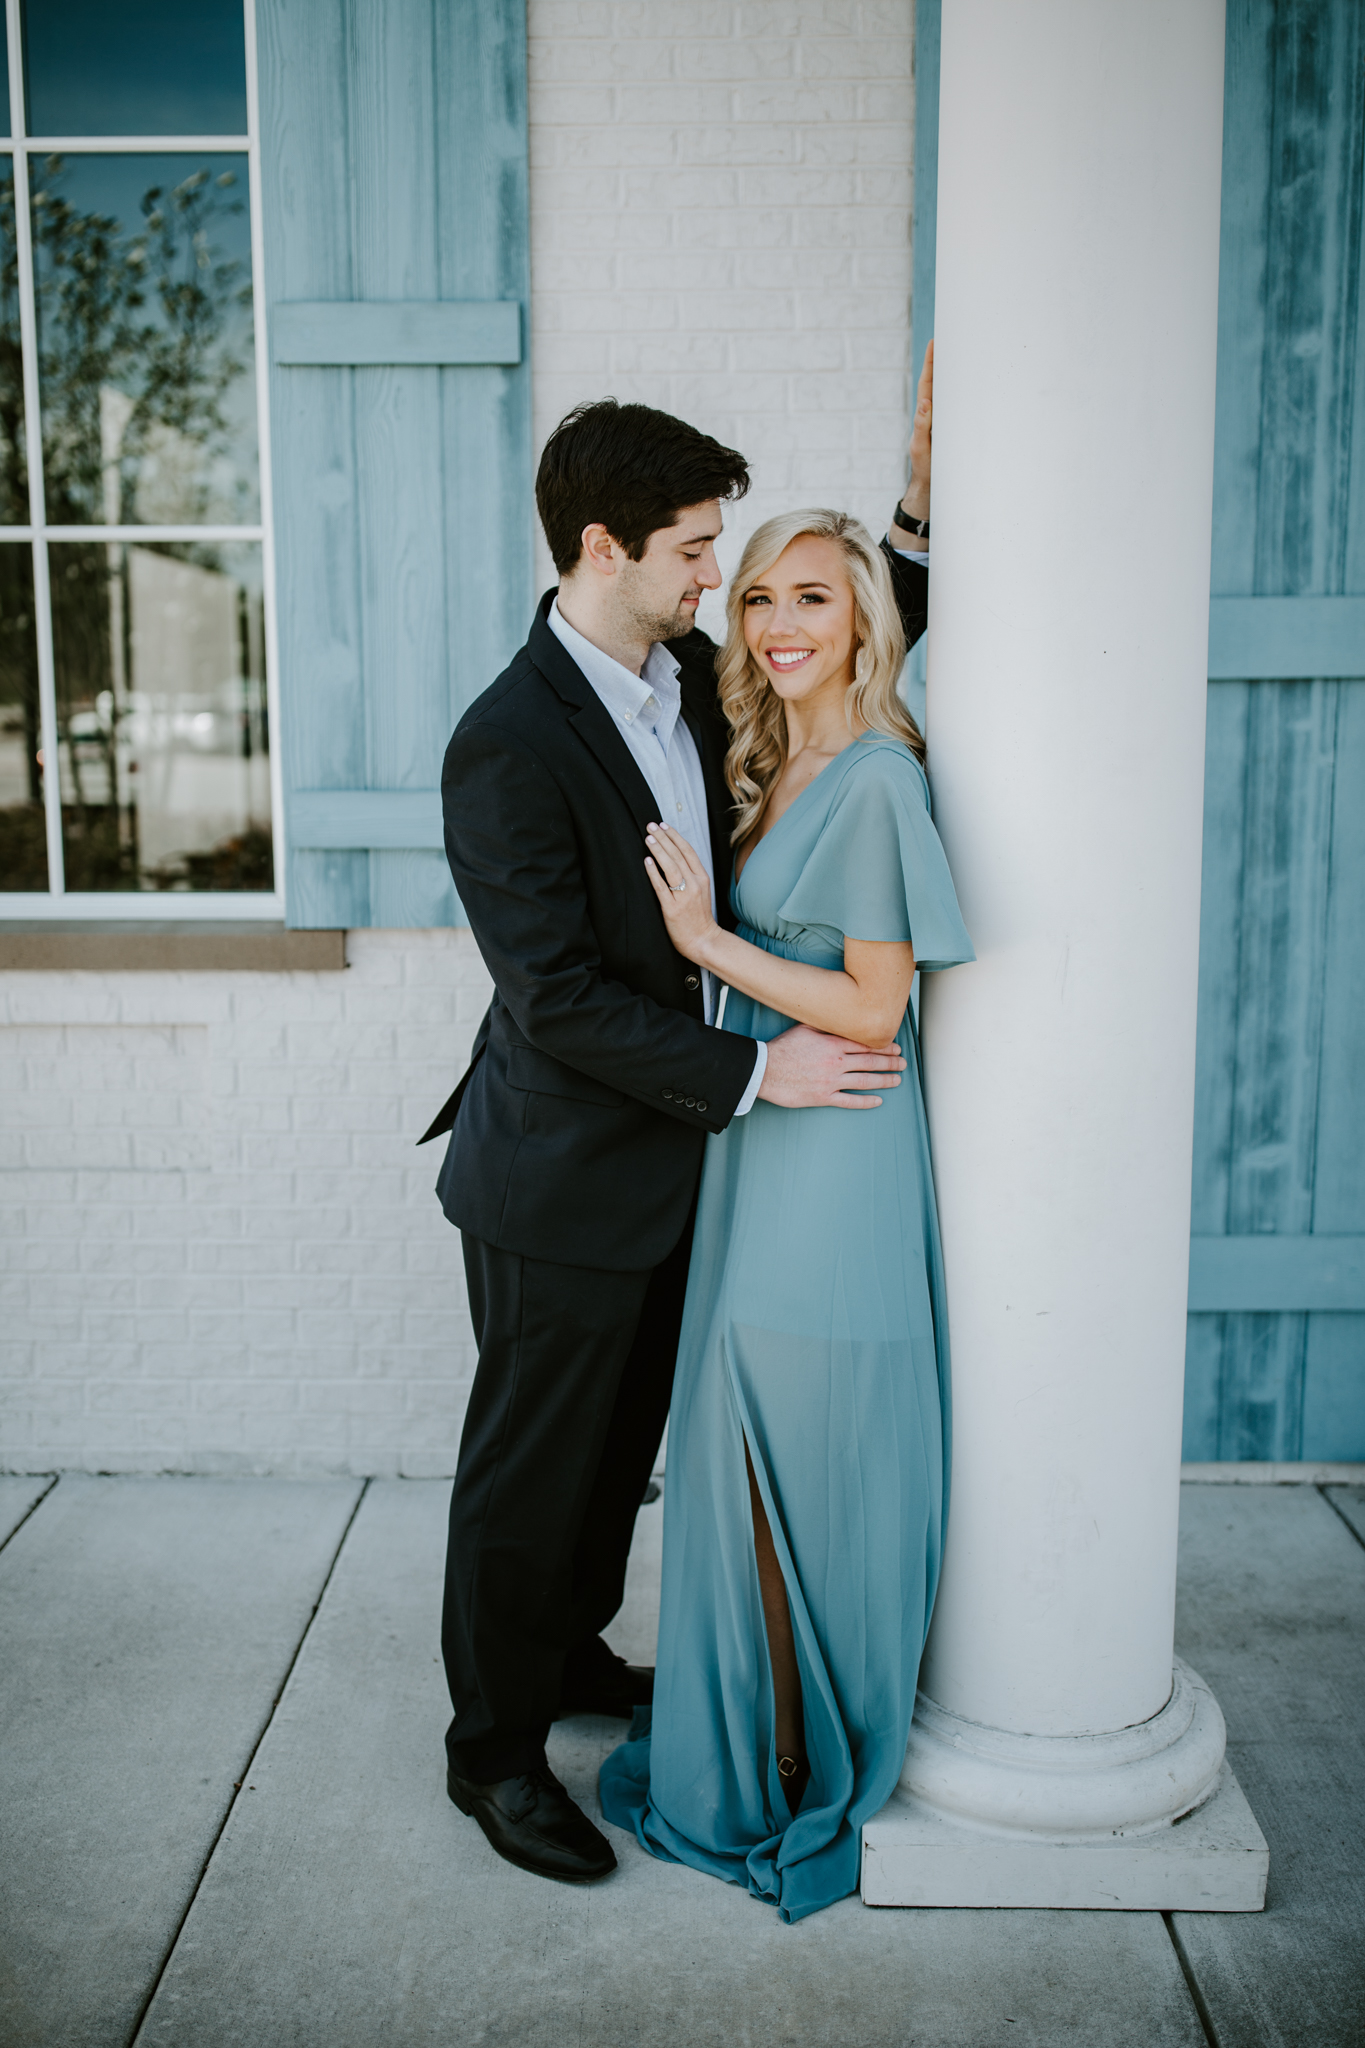 Ali-and-Jake-Chattanooga-Nashville-Tennessee-Wedding-Elopement-Photographer-80.jpg